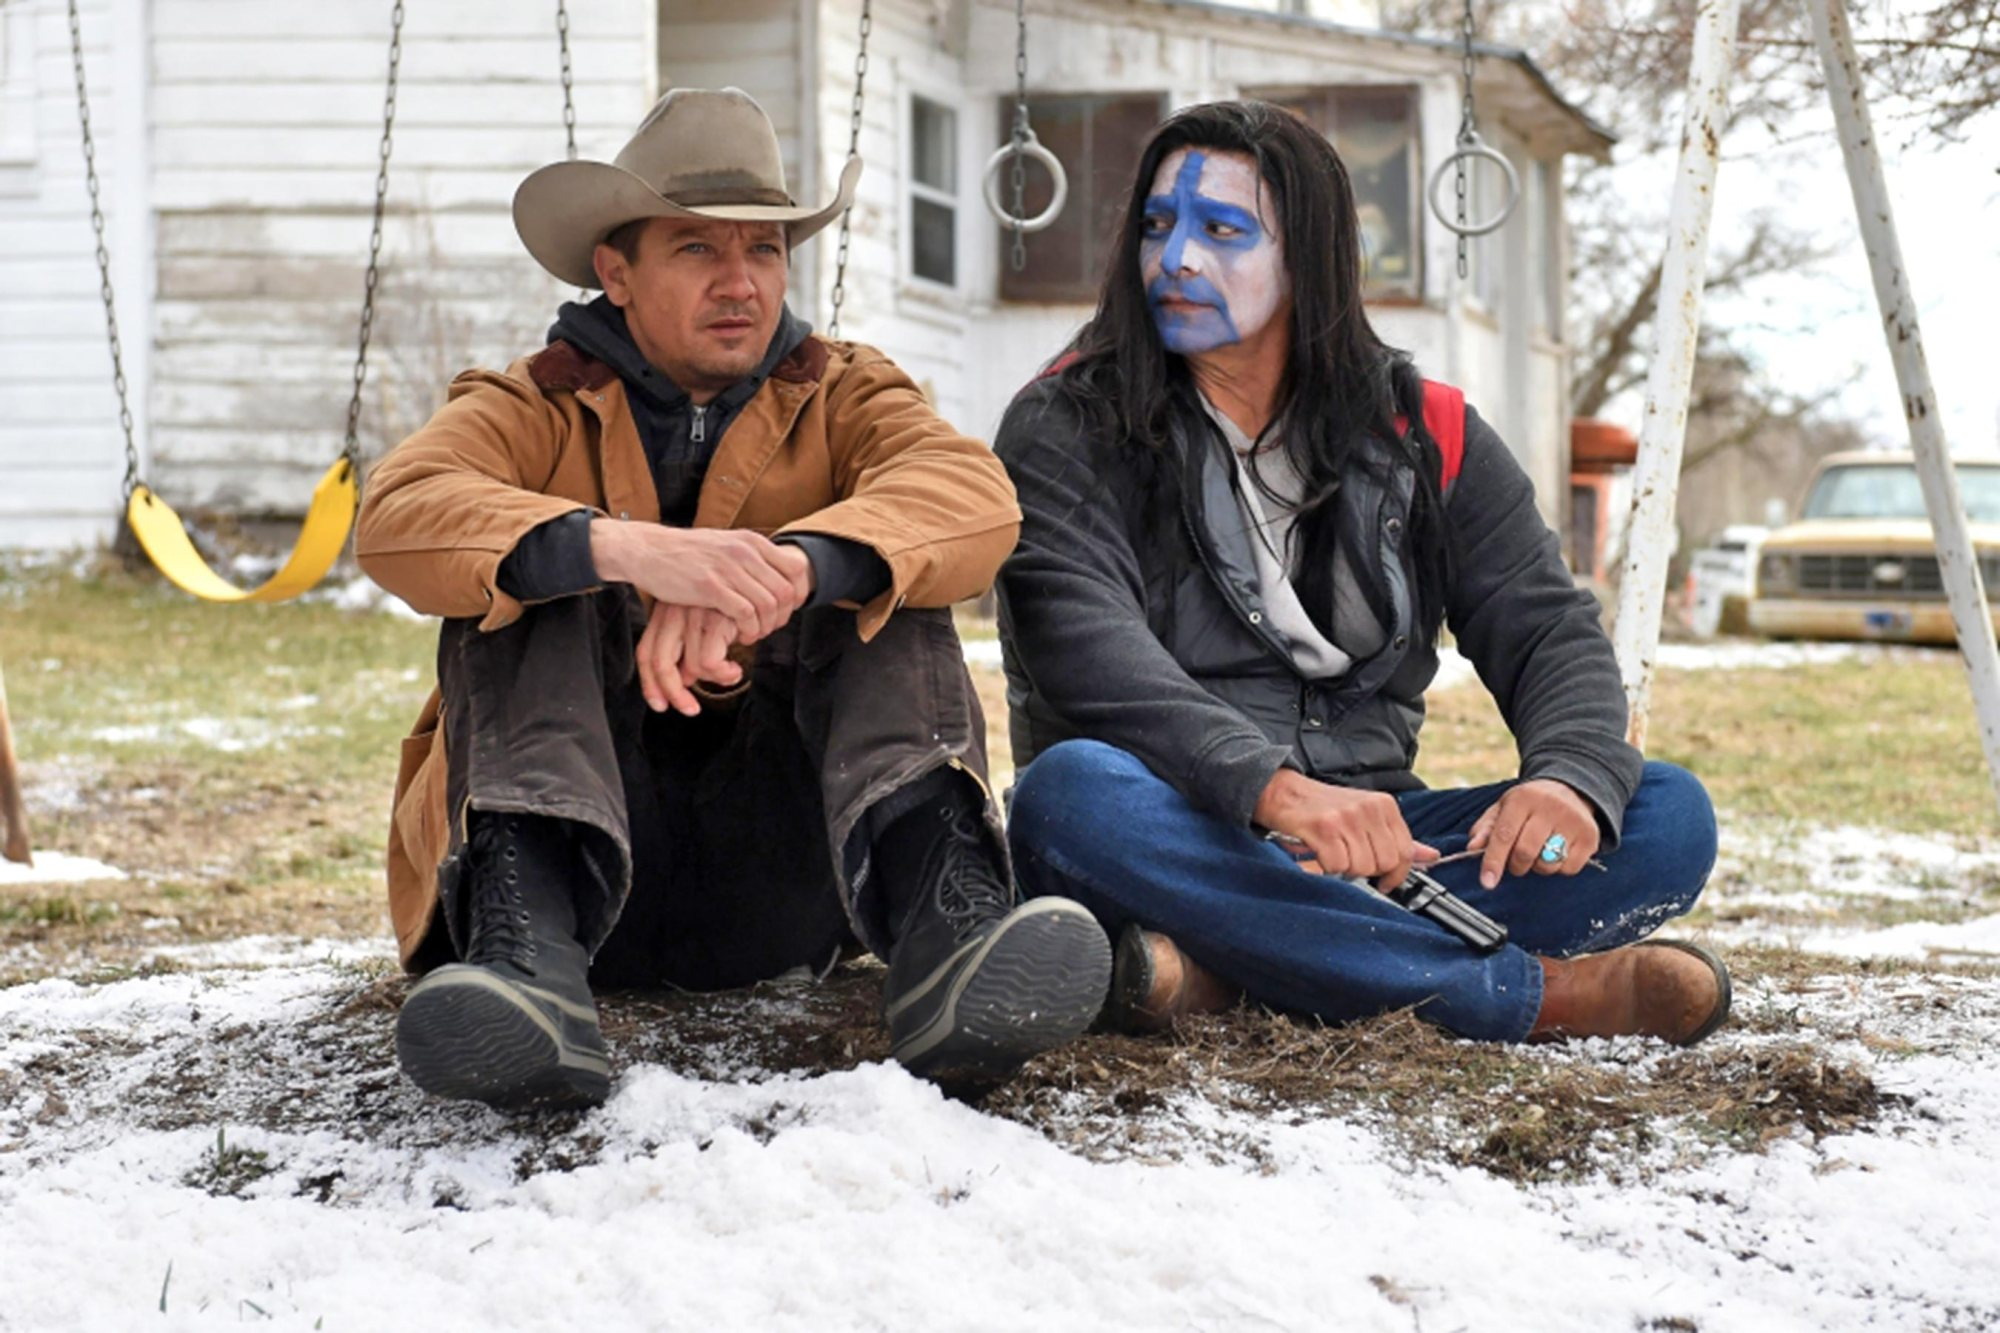 Wind river, movie review, lucas mirabella, jeremy renner